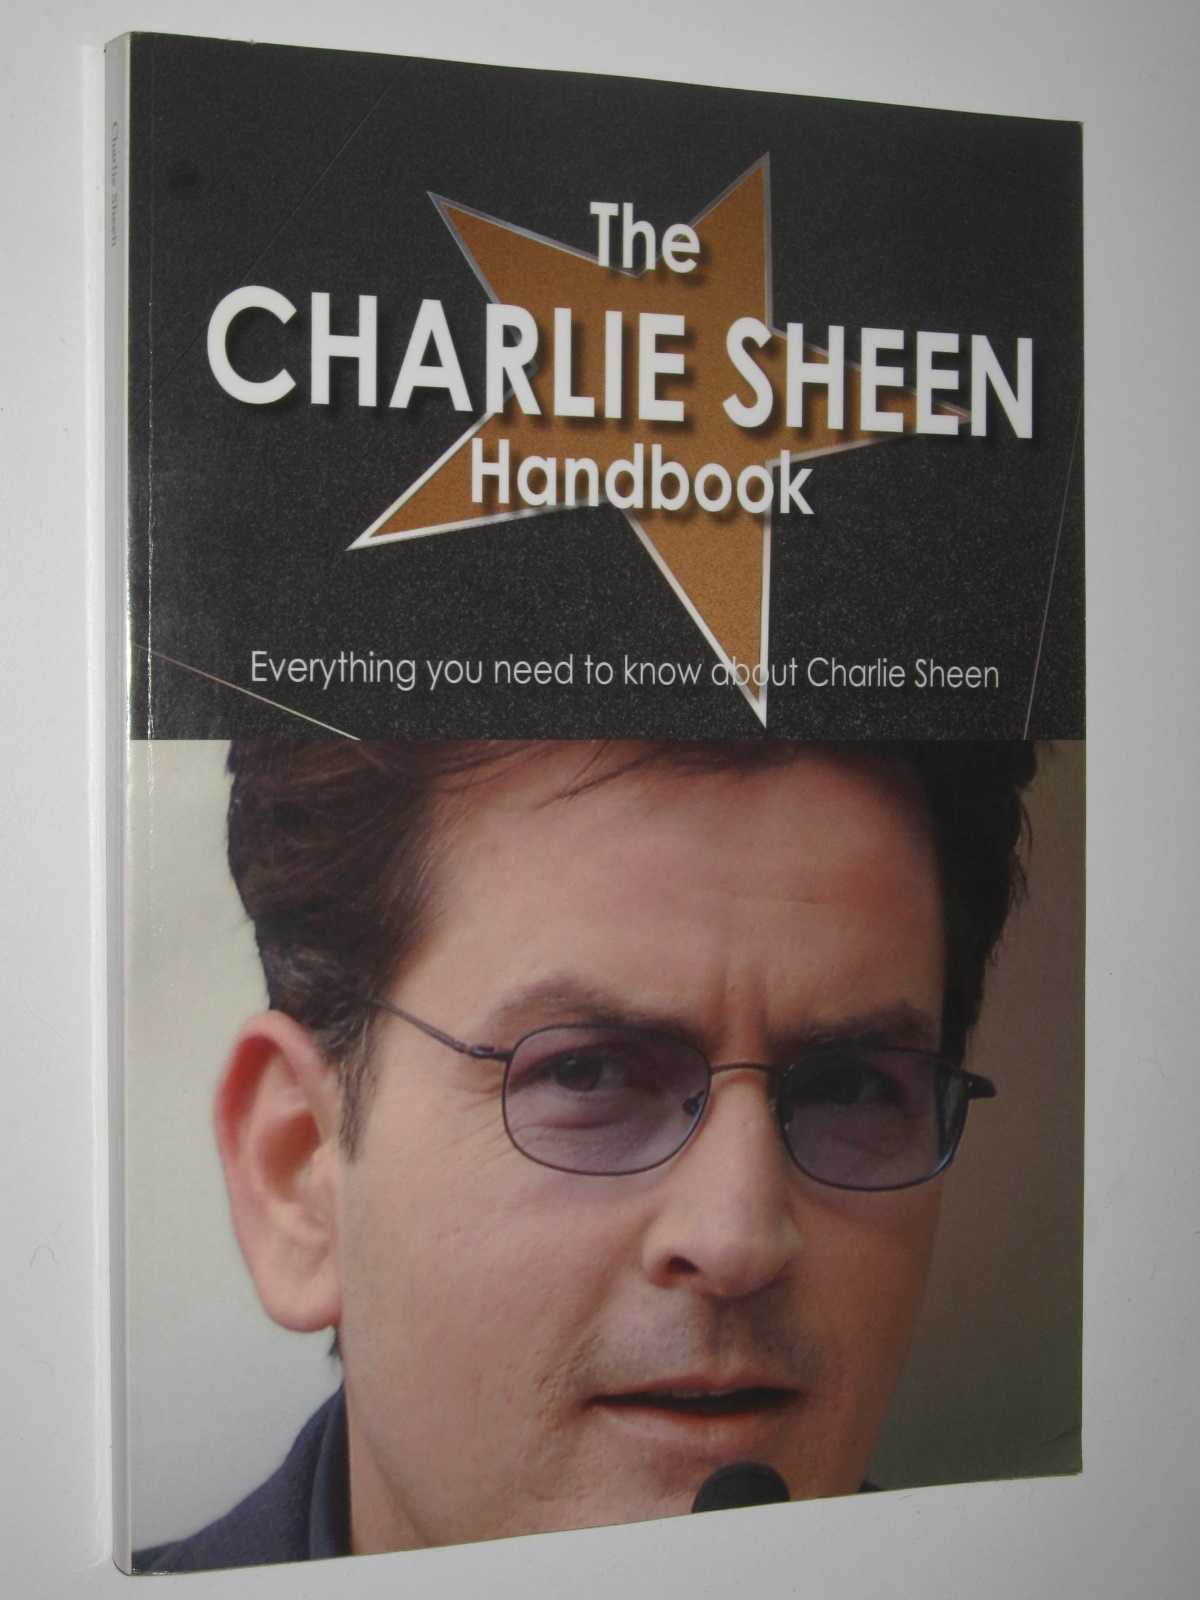 The Charlie Sheen Handbook : Everything You Need to Know Abouth Charlie Sheen, Vivian, Moultrie